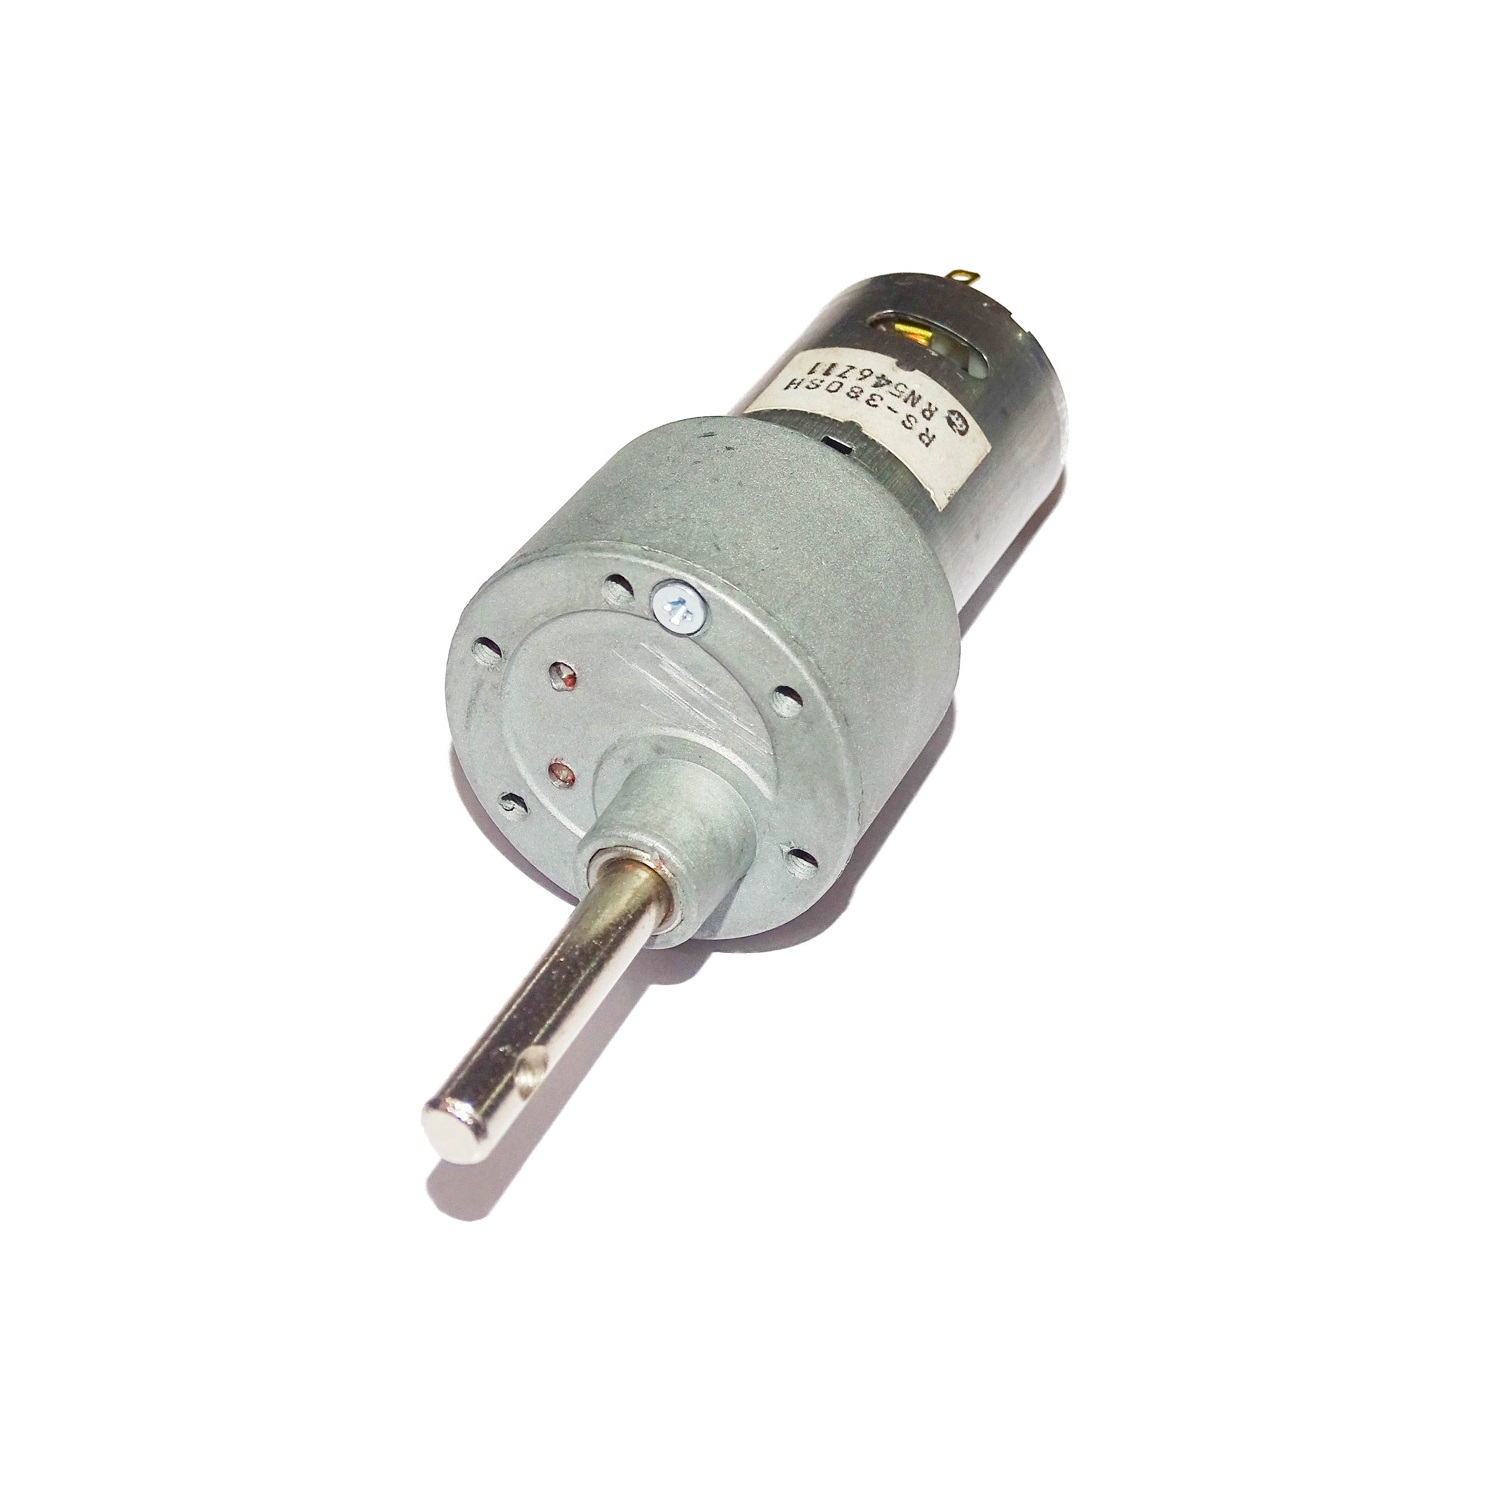 Johnson Geared Motor (Made In India) 12 V DC 300 RPM